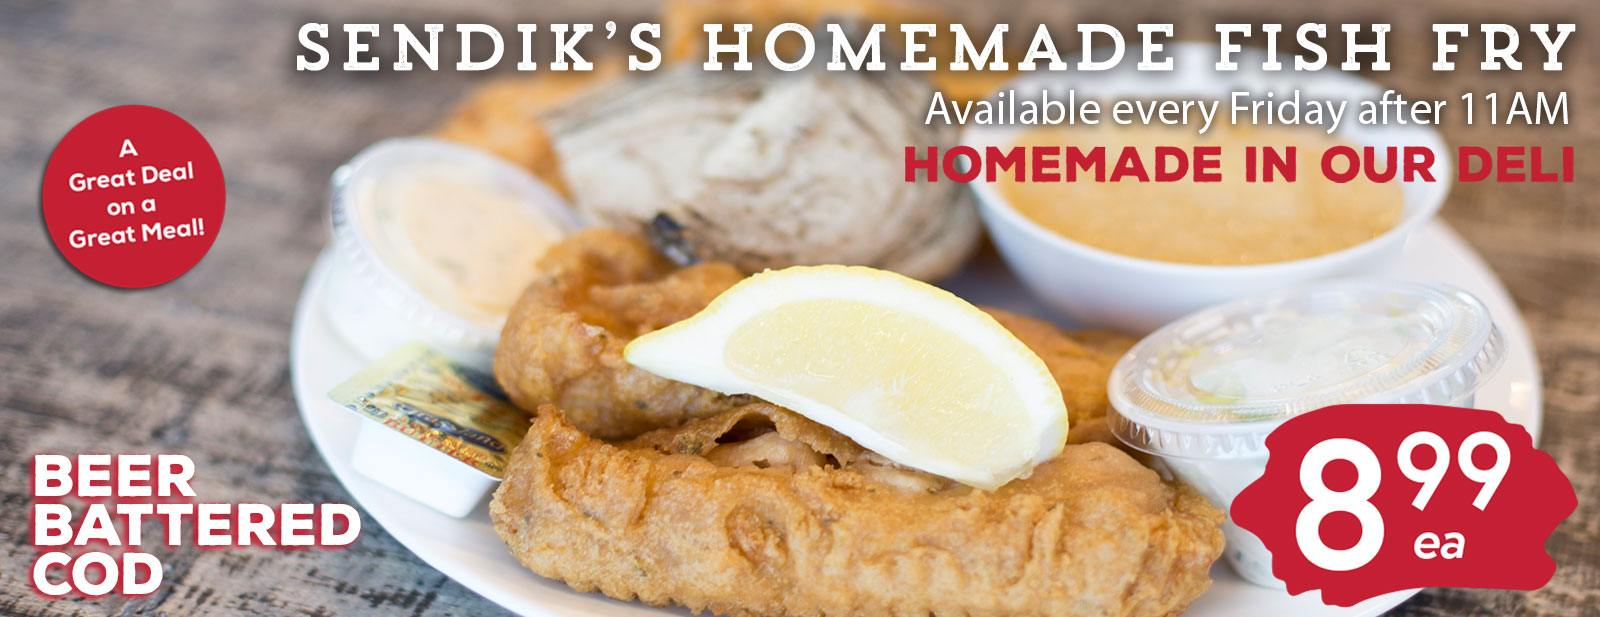 Sendik's Homemade Fish Fry